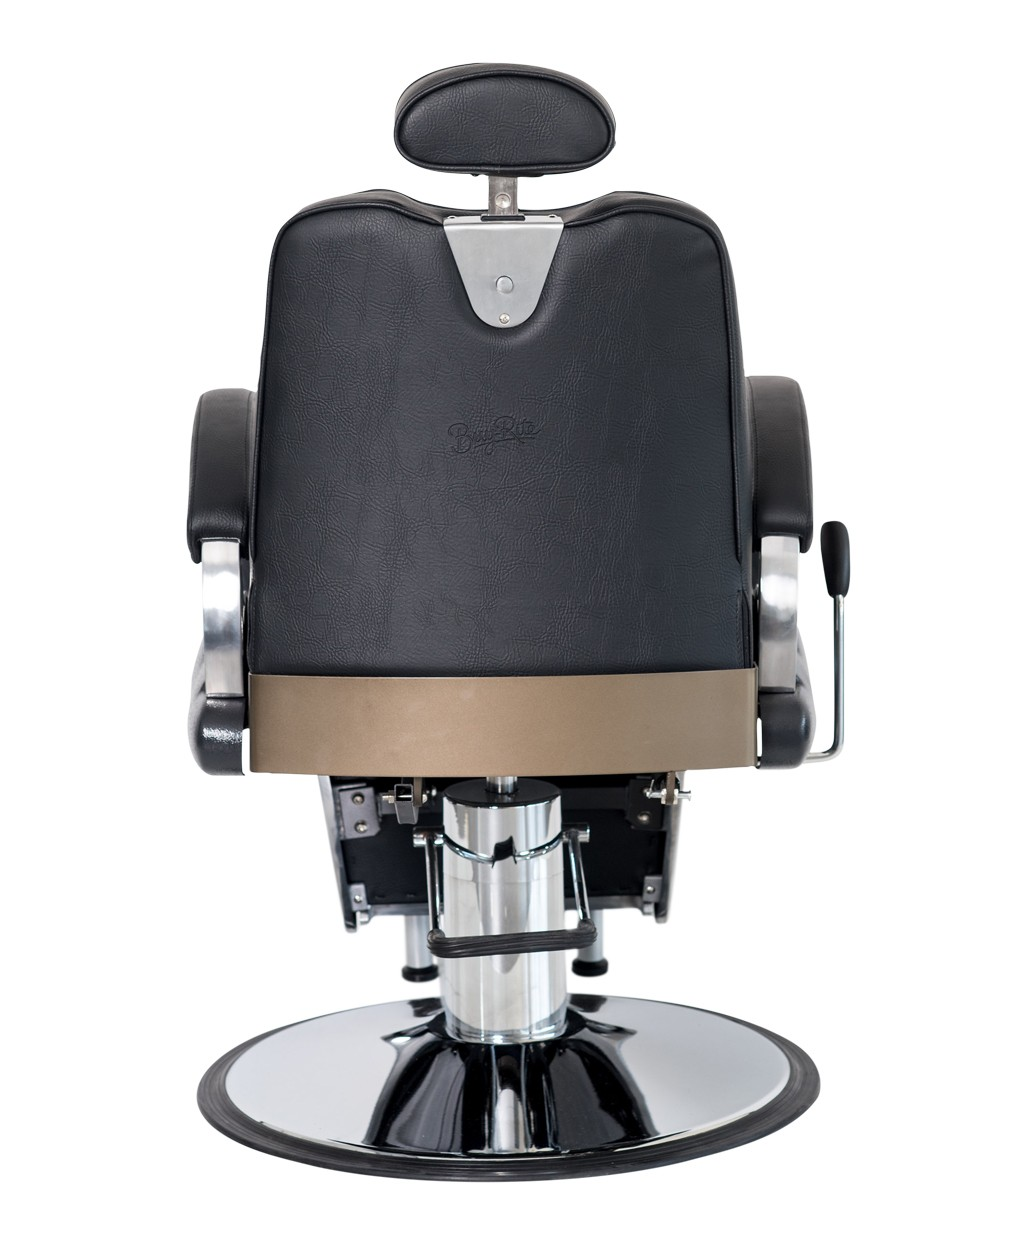 professional barber chair reviews dinette chairs with arms apollo